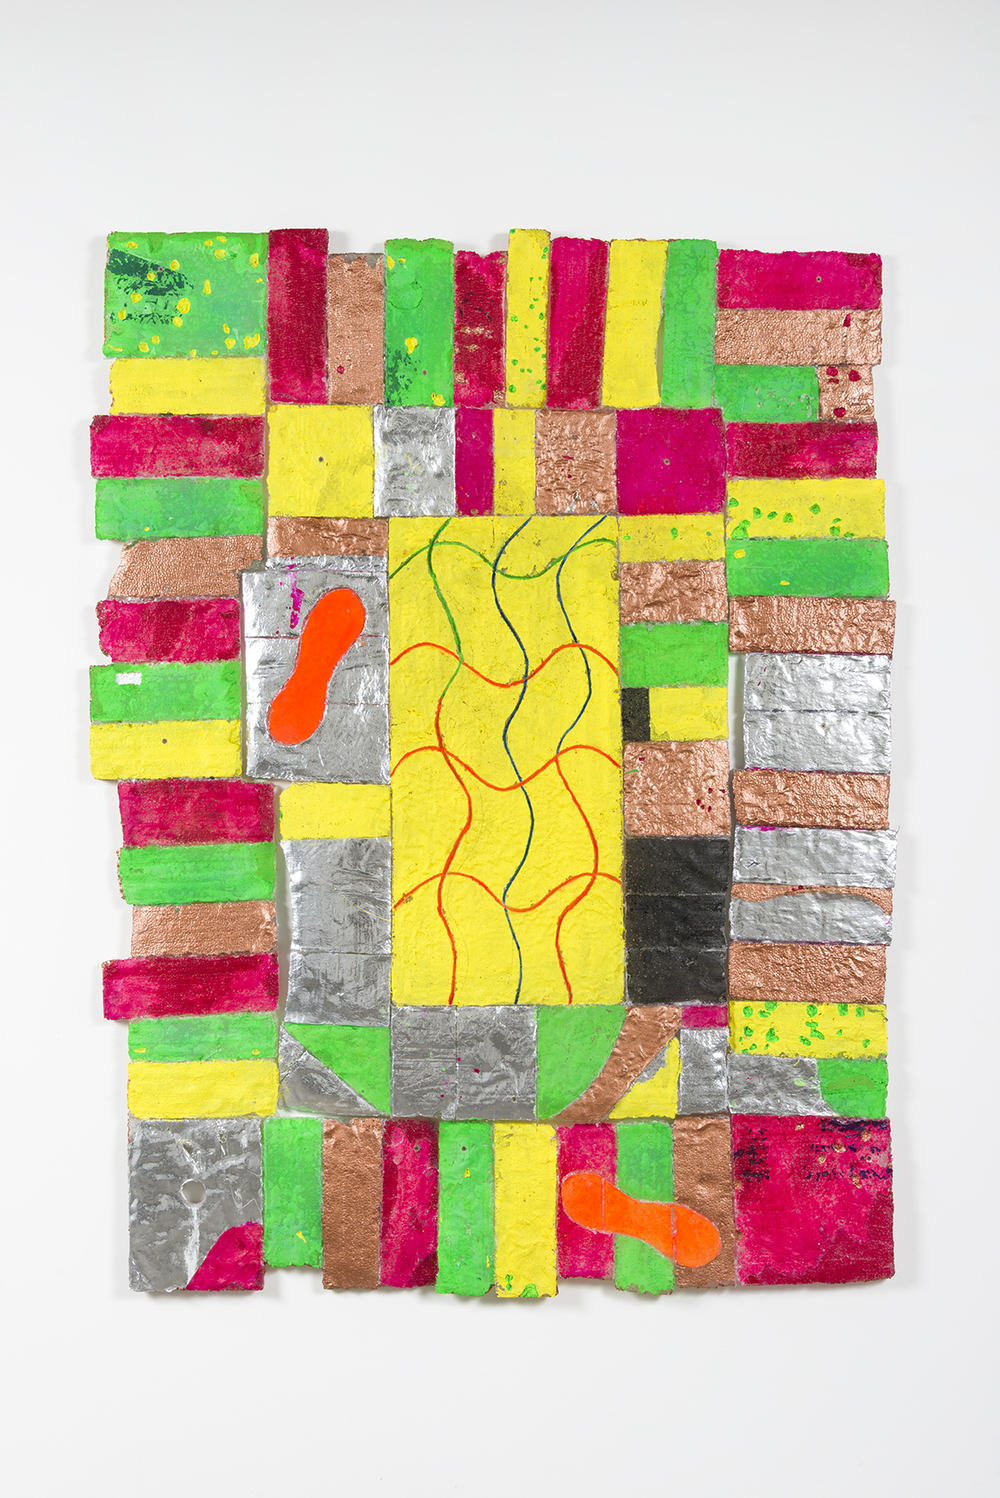 Nick Kramer - Another Wind of Rug - 2016 - Resin w/ Paint, Foil - 73 x 55 x 1""